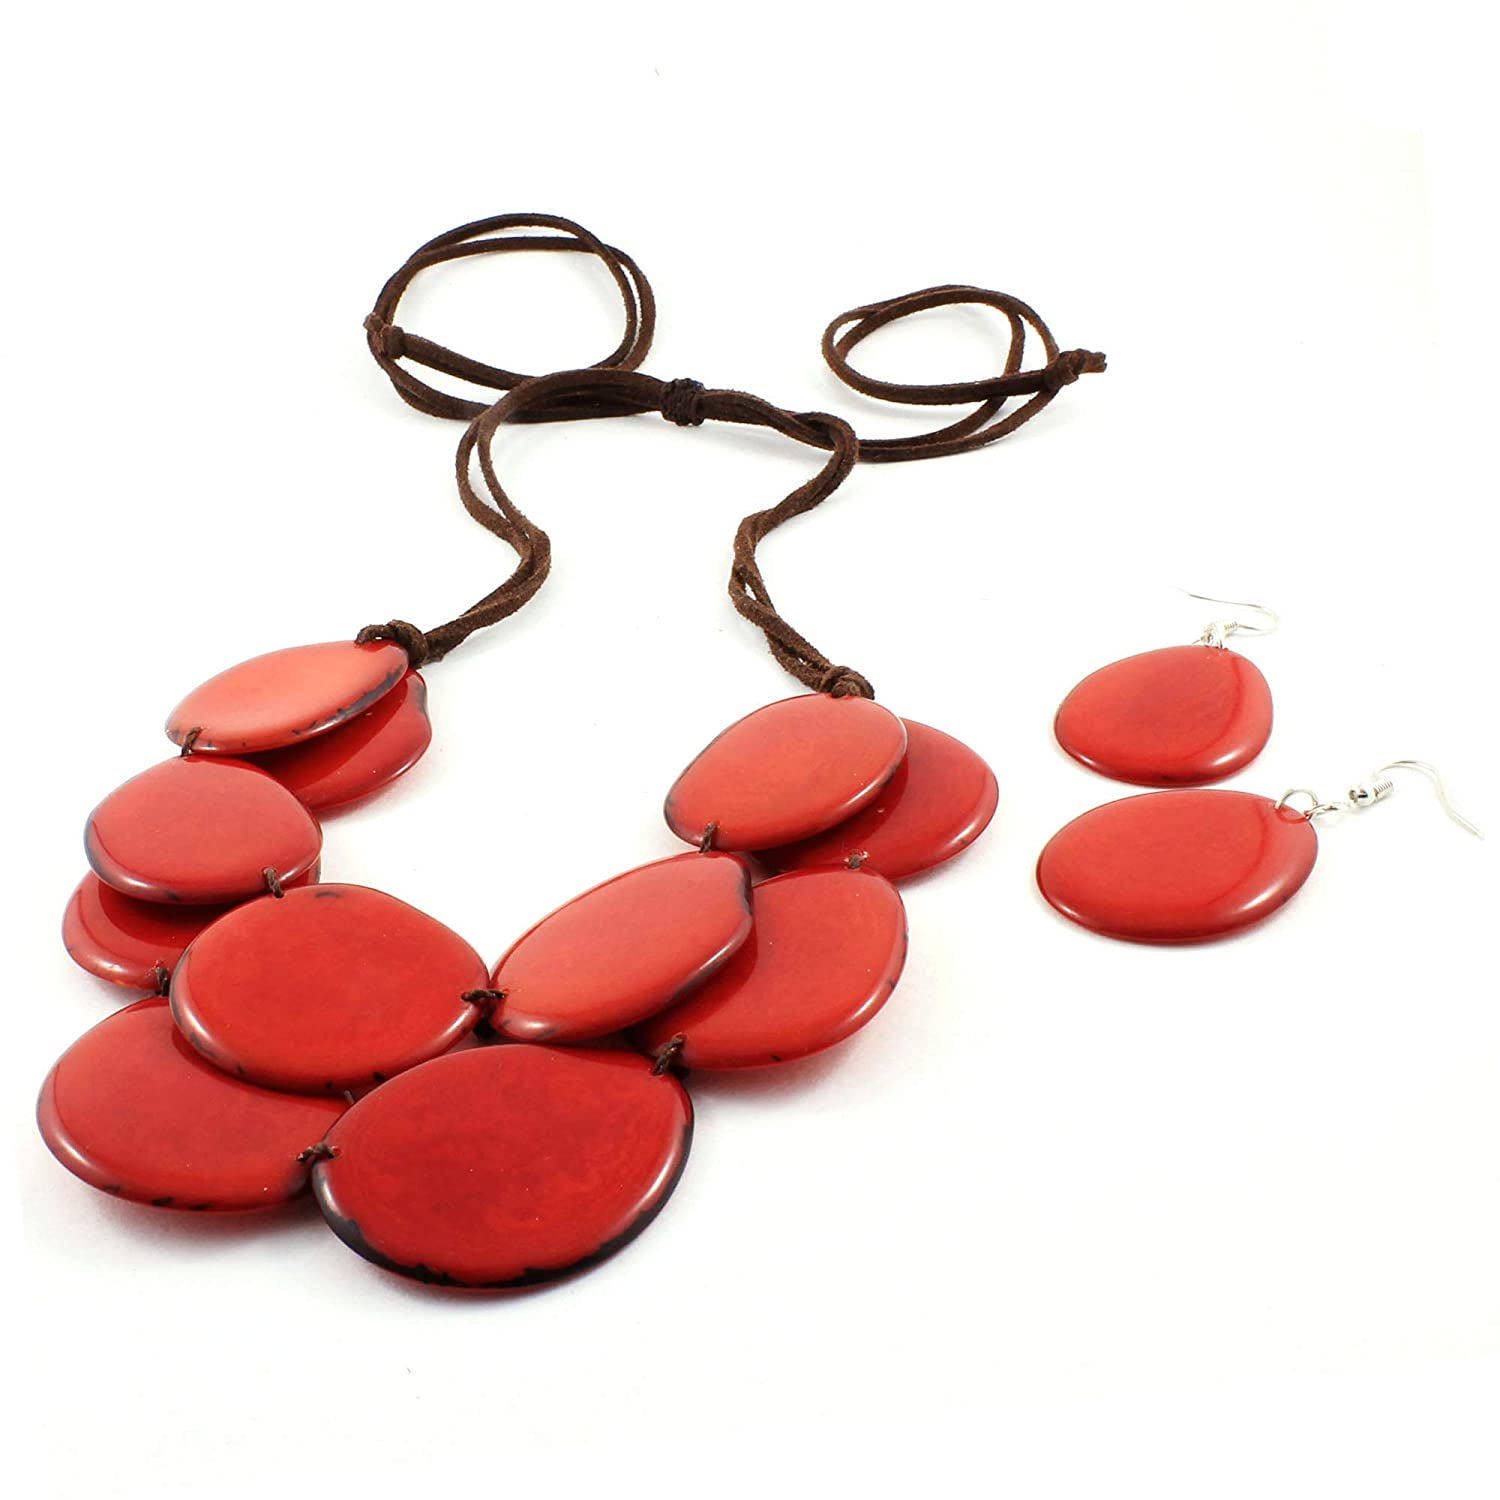 TAGUA NUT CHUNKY HOOPS AND SLICES MULTICOLOURED ETHICAL FAIR TRADE SUSTAINABLE